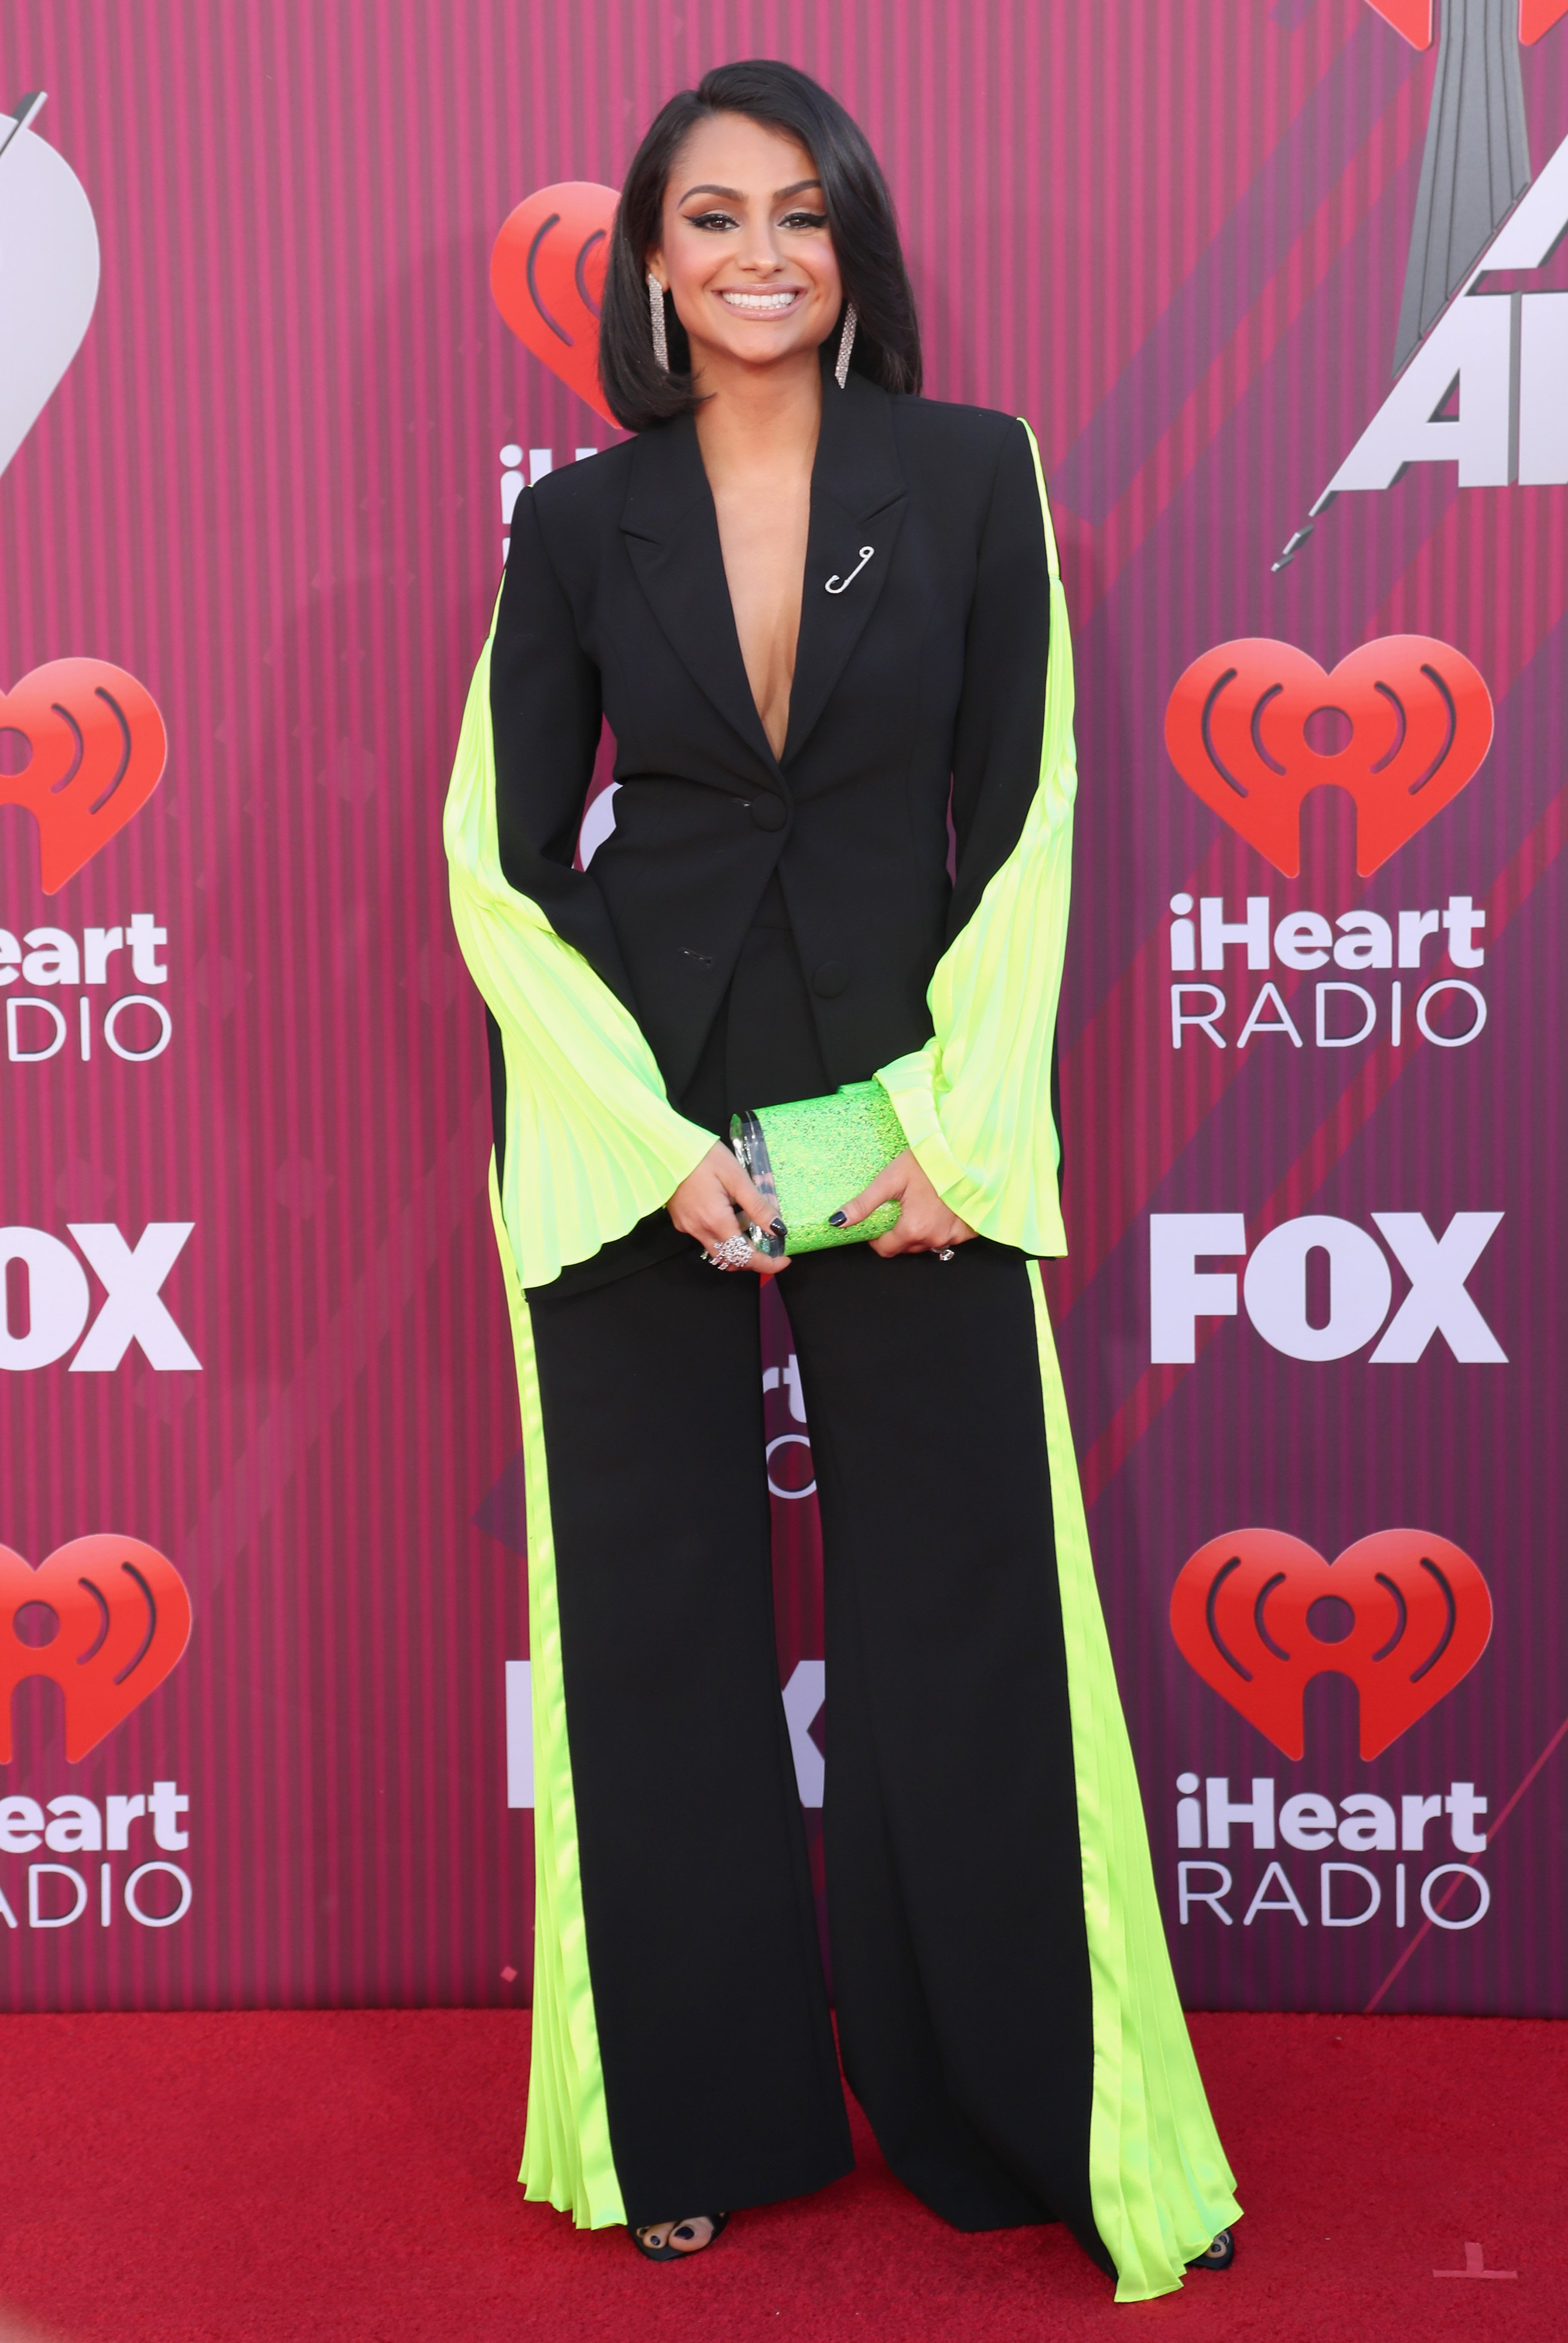 Nazanin Mandi a the 2019 iHeartRadio Music Awards on March 14, 2019 in Los Angeles, California. | Photo by Rich Polk/Getty Images for iHeartMedia